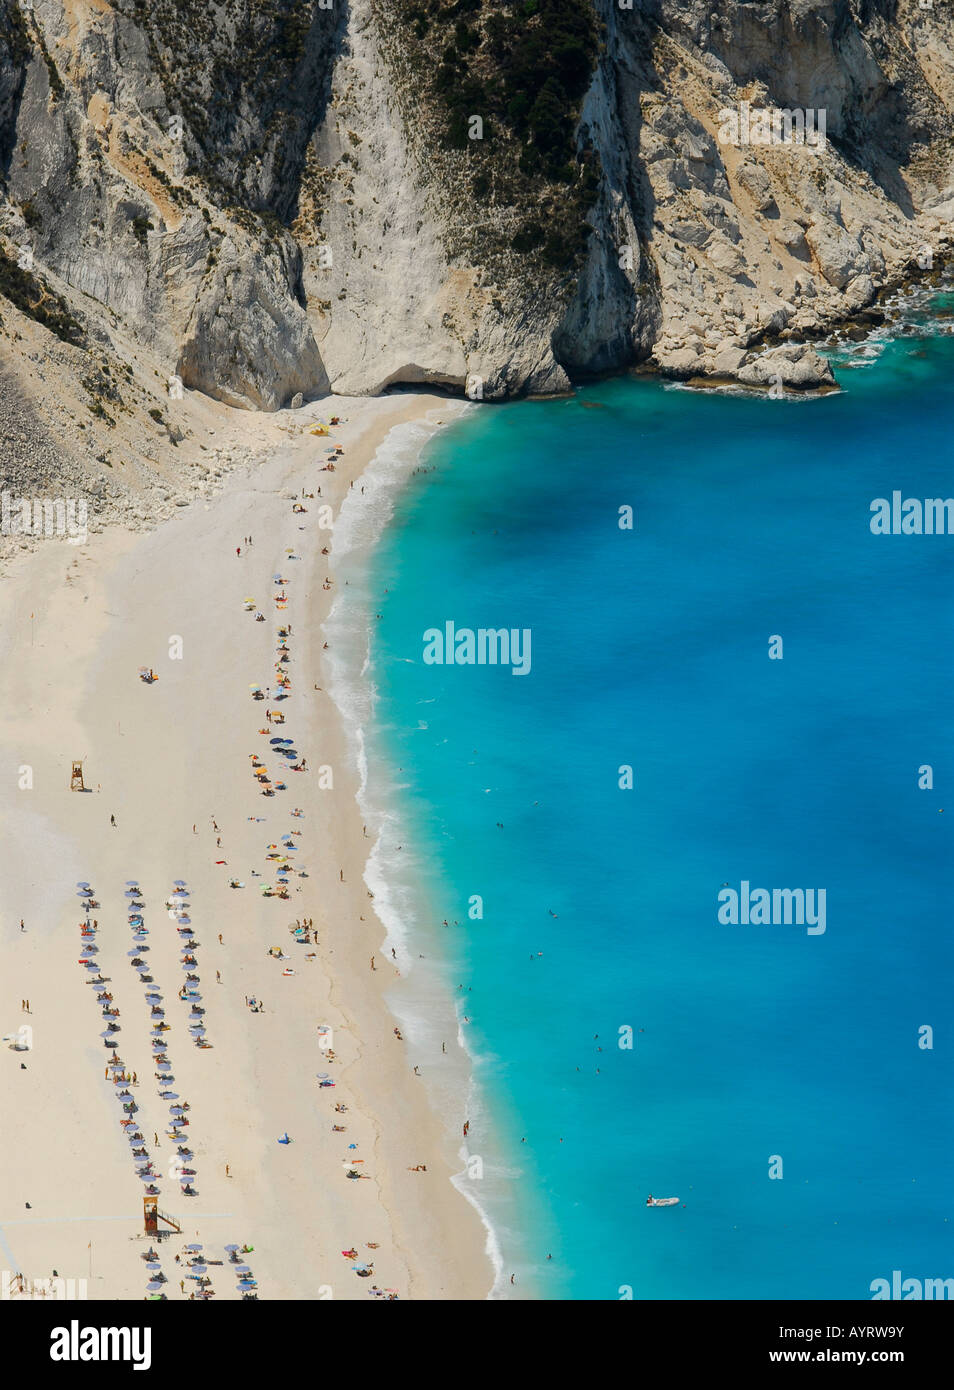 Mirtos Beach, Kefalonia, Ionian Islands, Greece Stock Photo